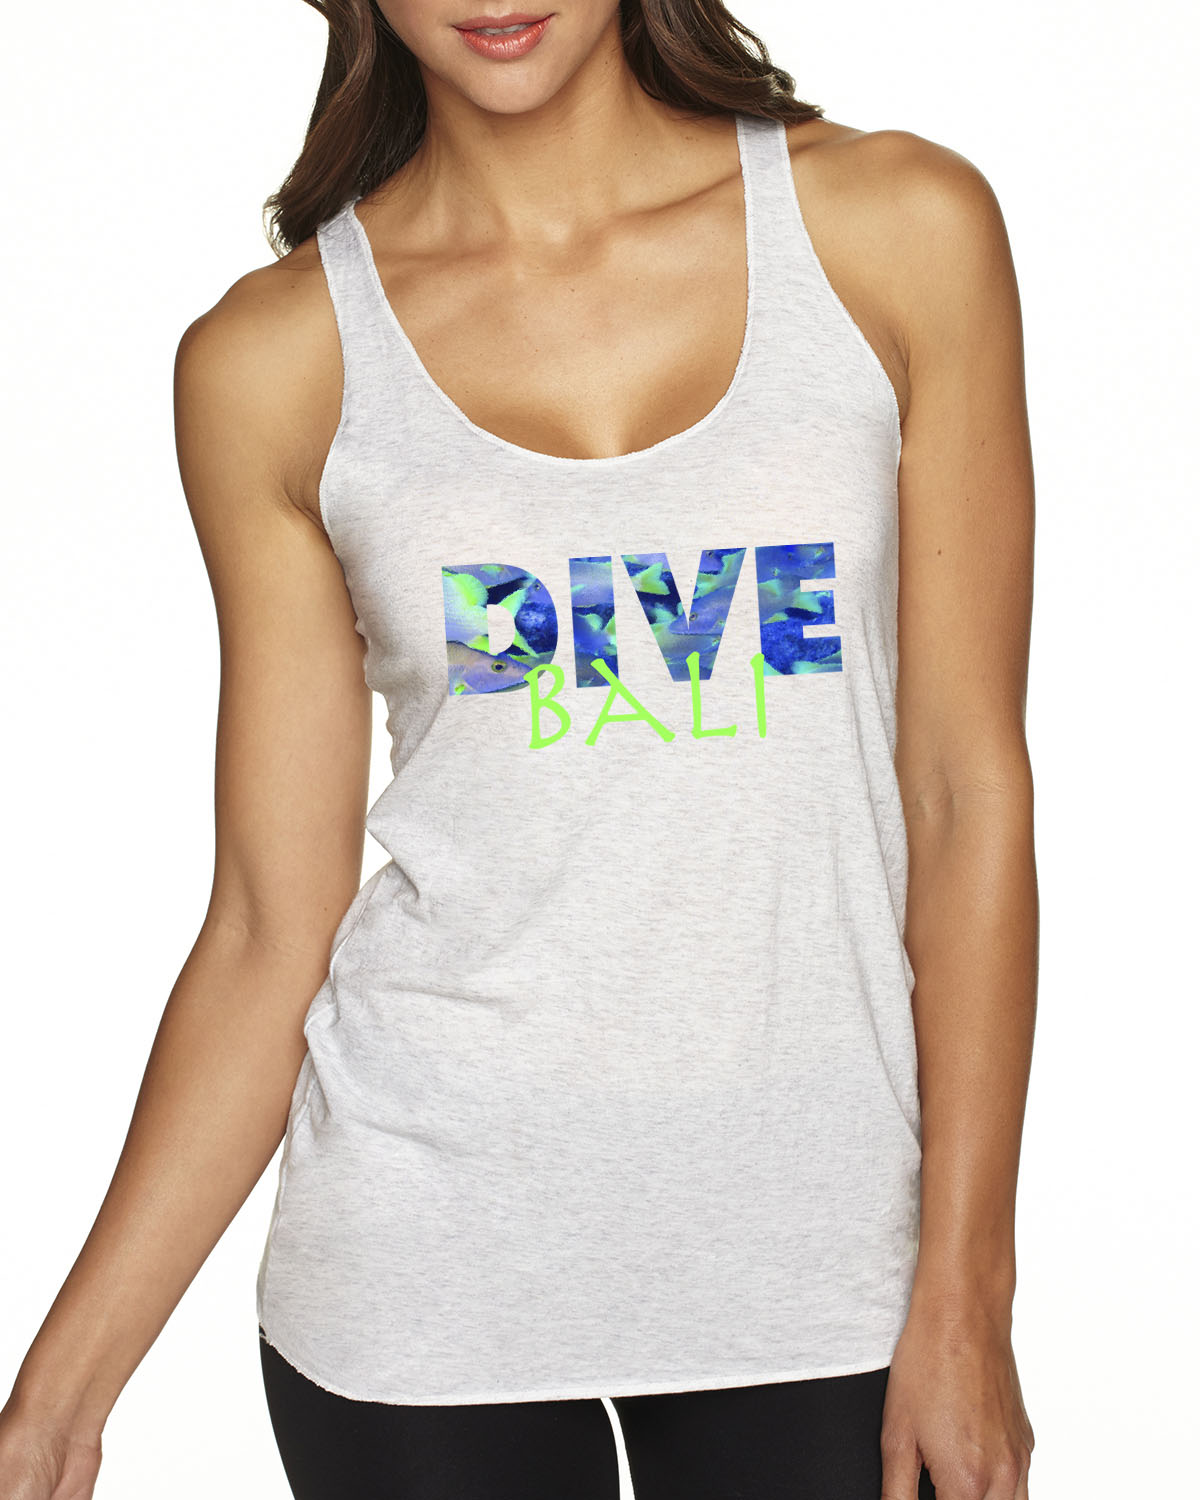 Racer-Back DIVE Bali Tank Top (Heather White)